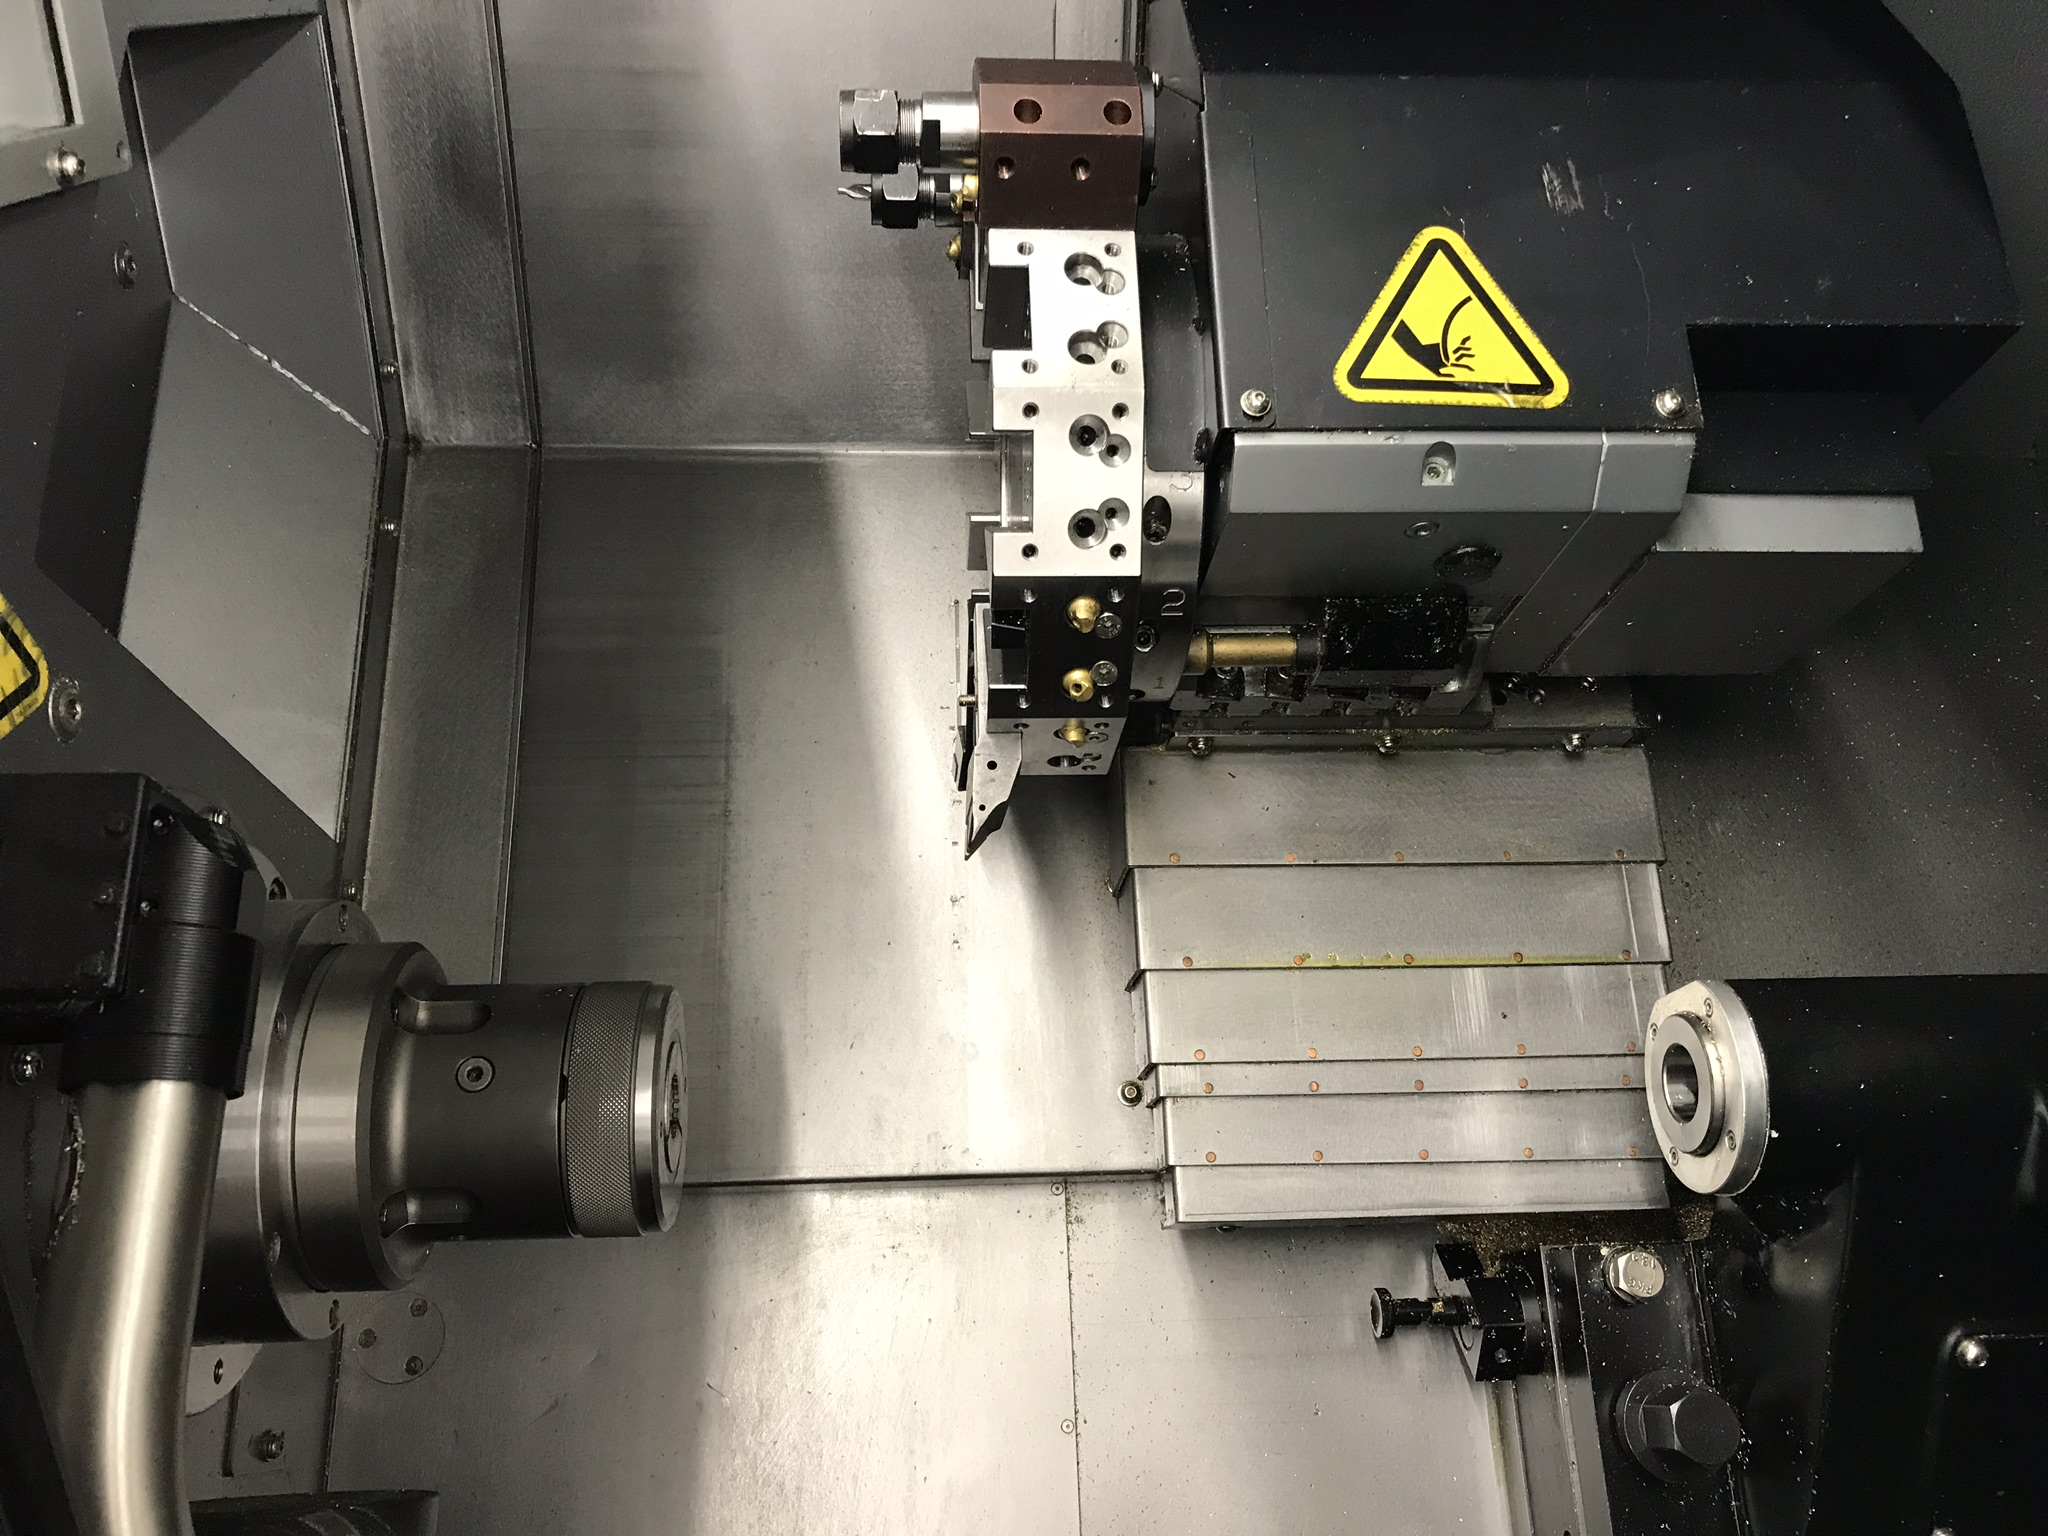 Hurco TM-6i CNC Lathe, Winmax Classic Package, Rigid Tap, Renishaw Presetter, Chip Conv, 400 Hours! - Image 9 of 13